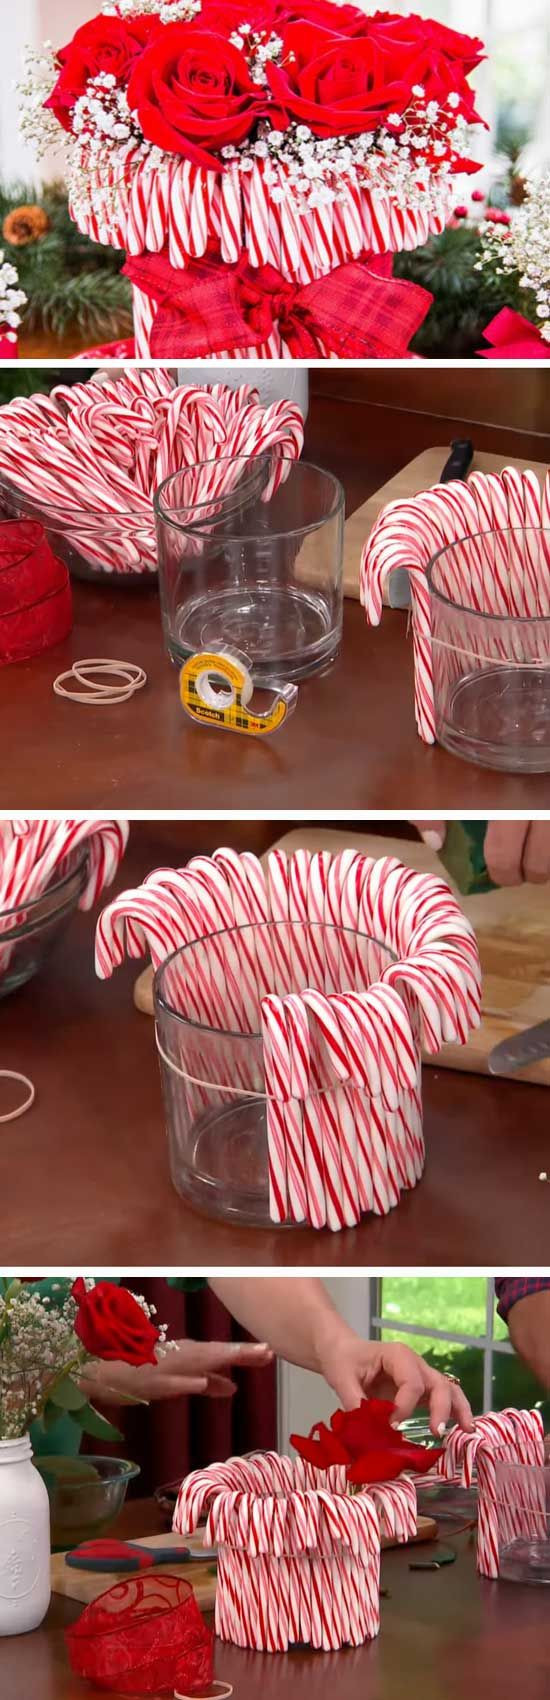 Adult Christmas Party Ideas  Candy Cane Vase